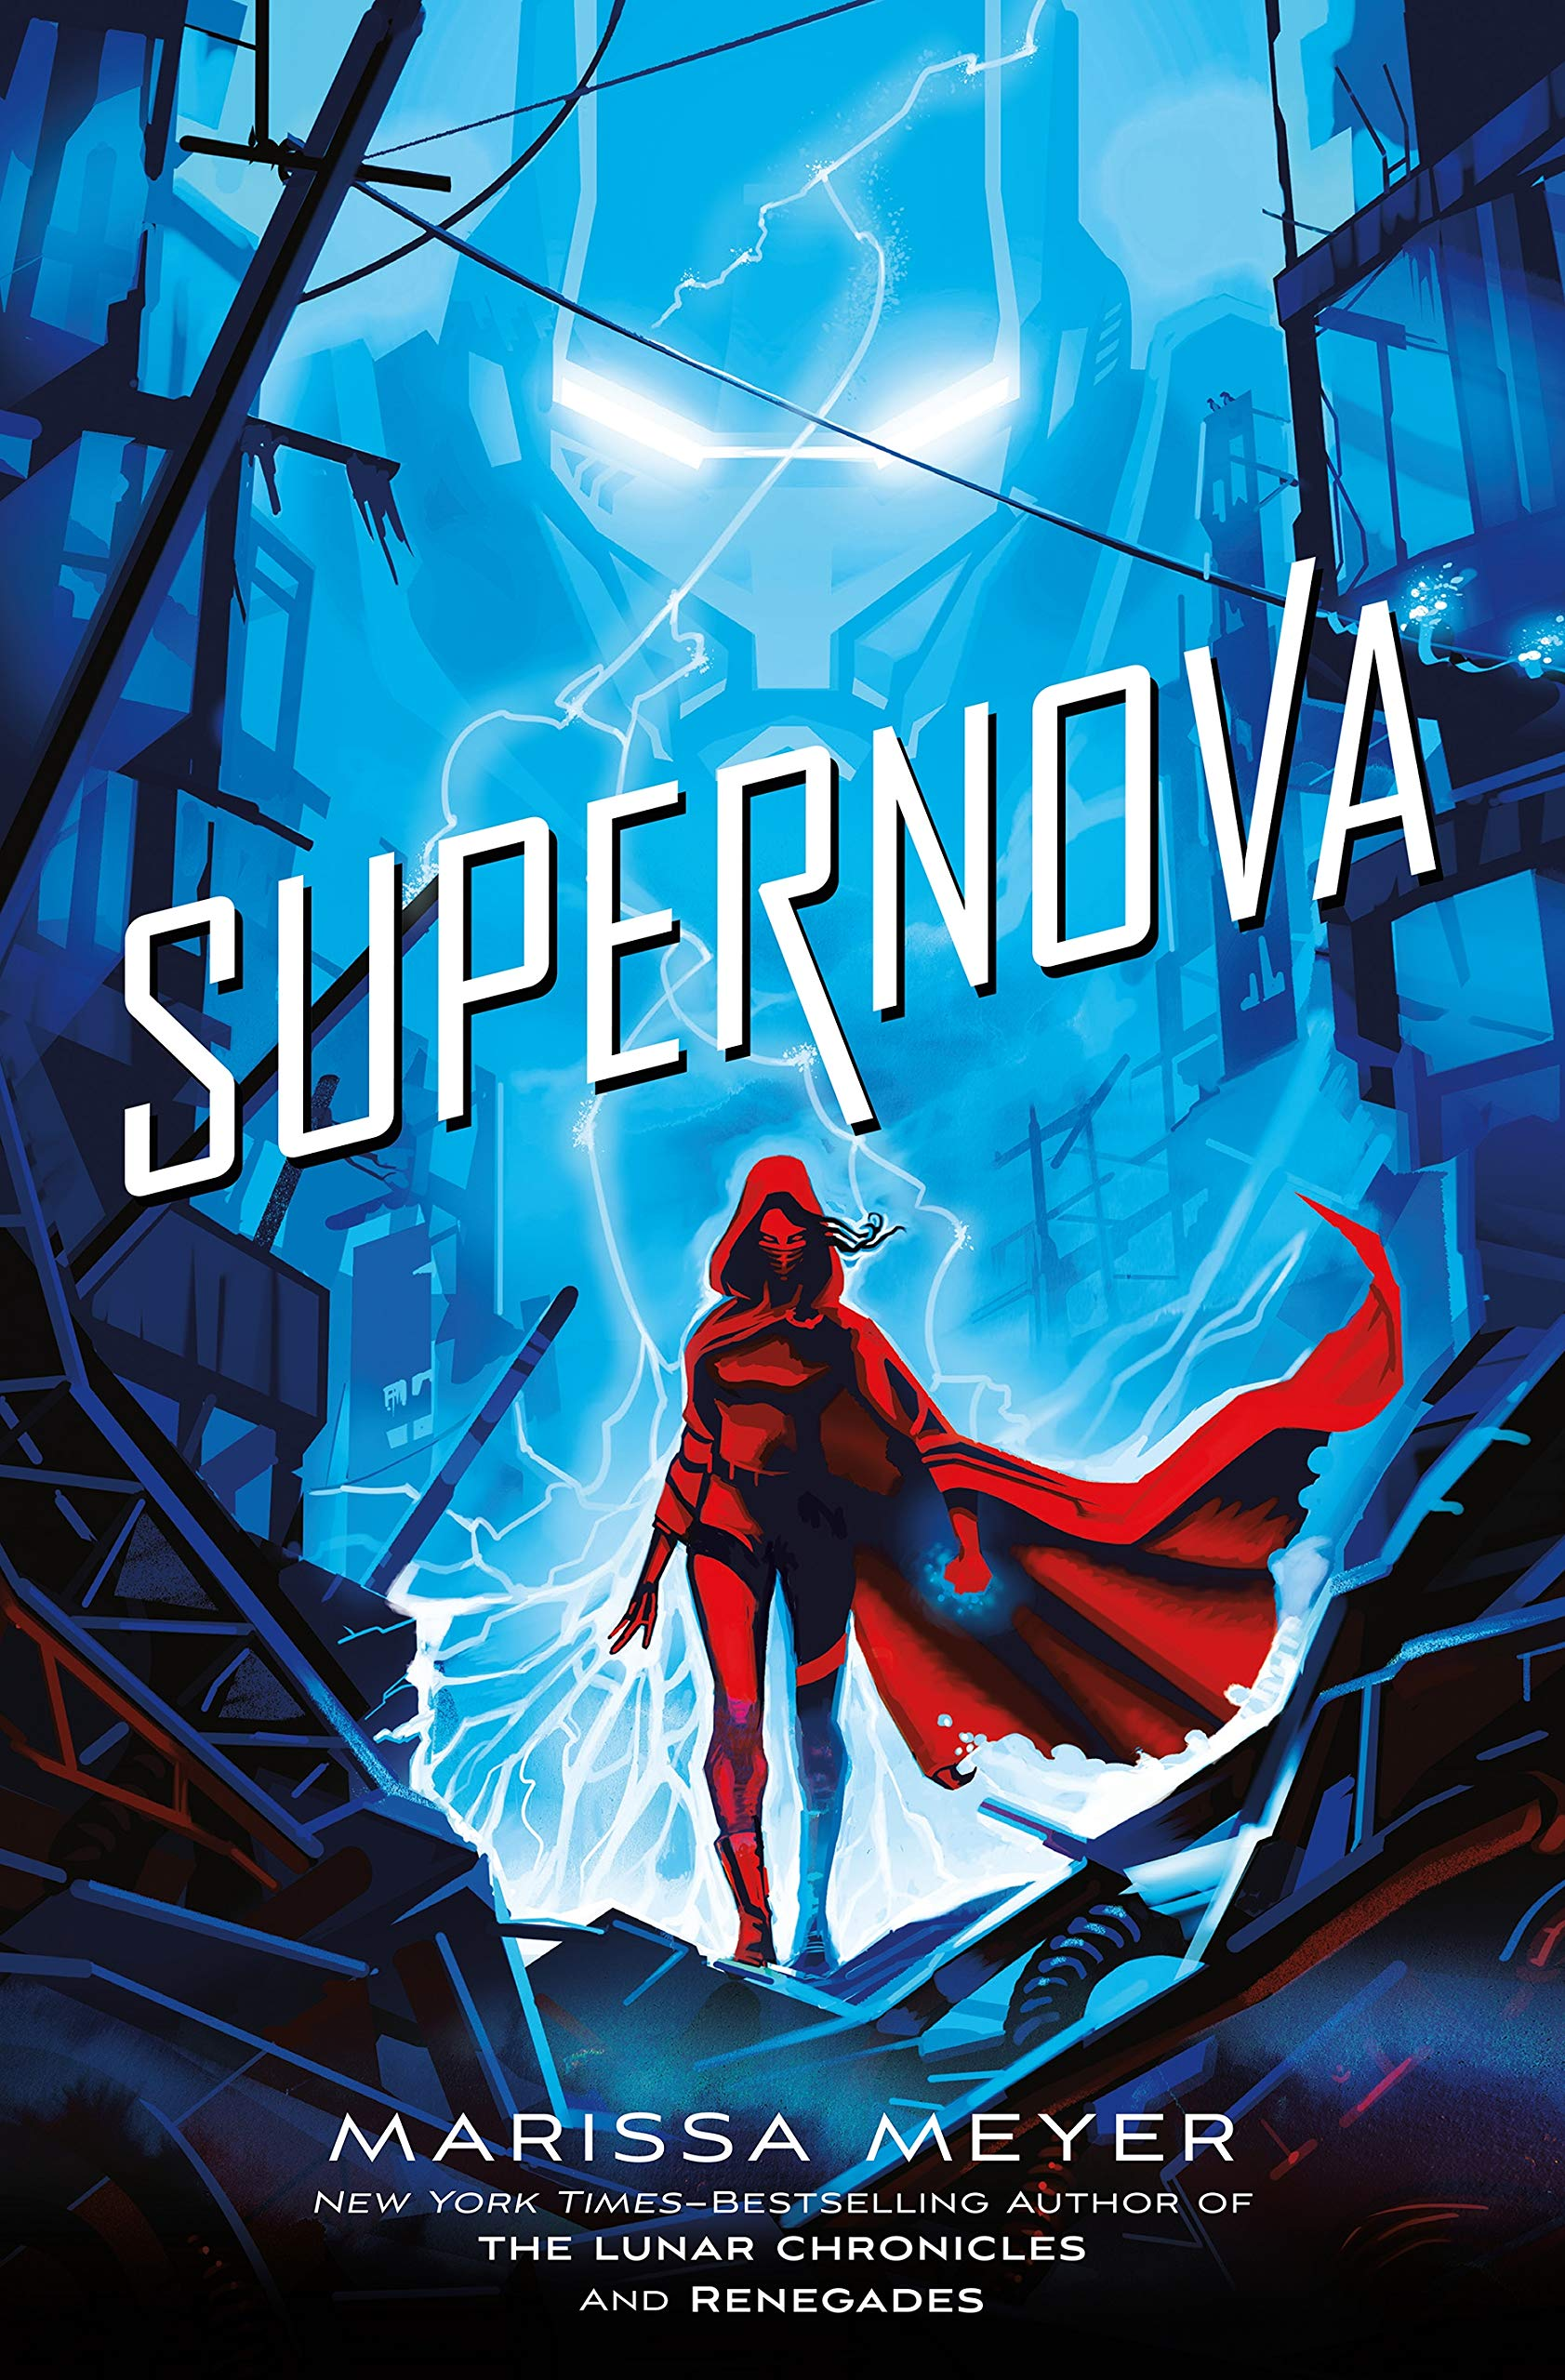 Image result for supernova marissa meyer